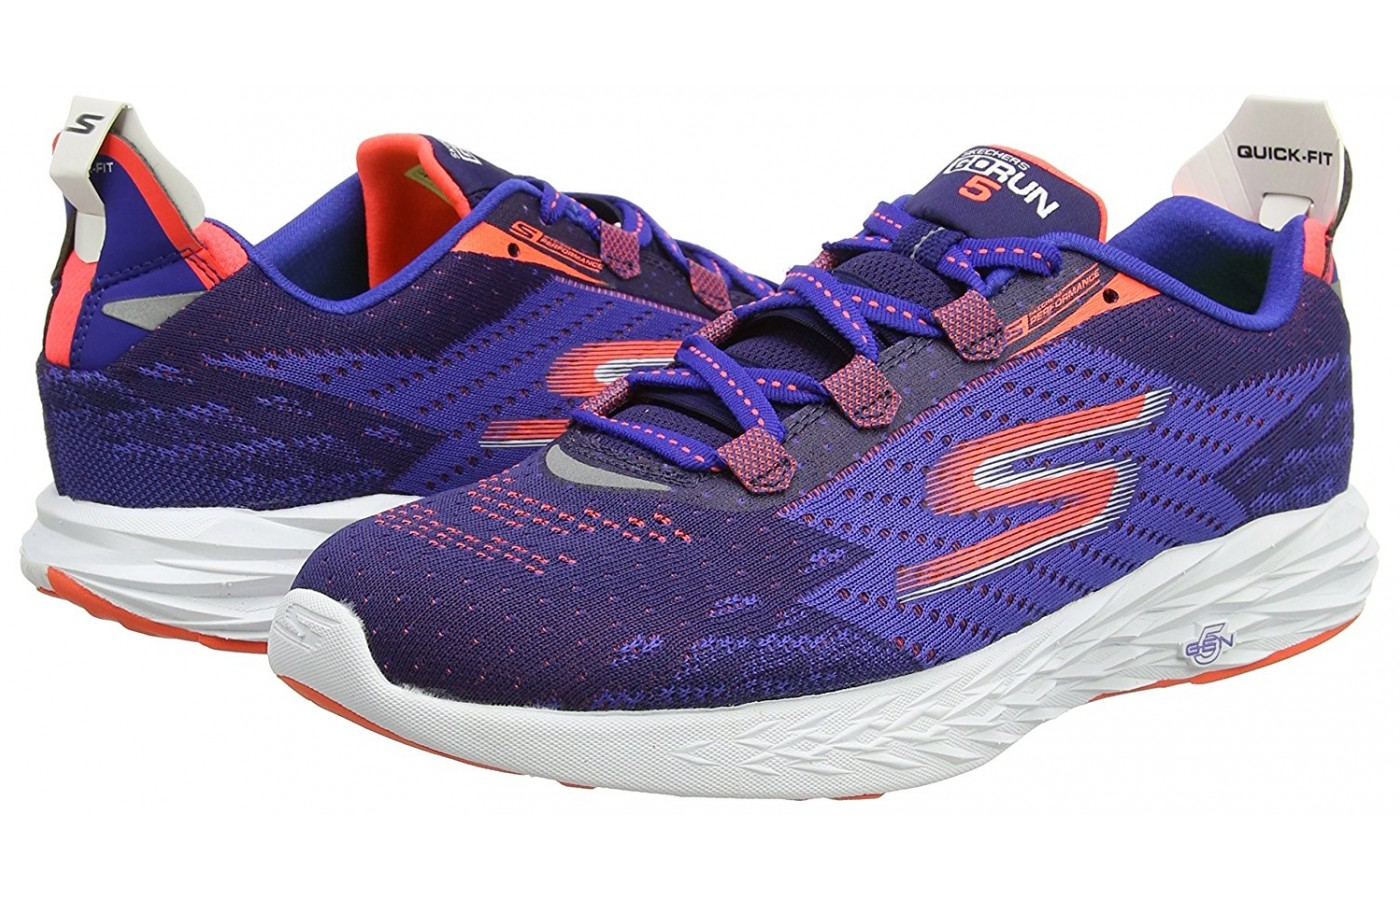 Skechers GoRun 5 pair